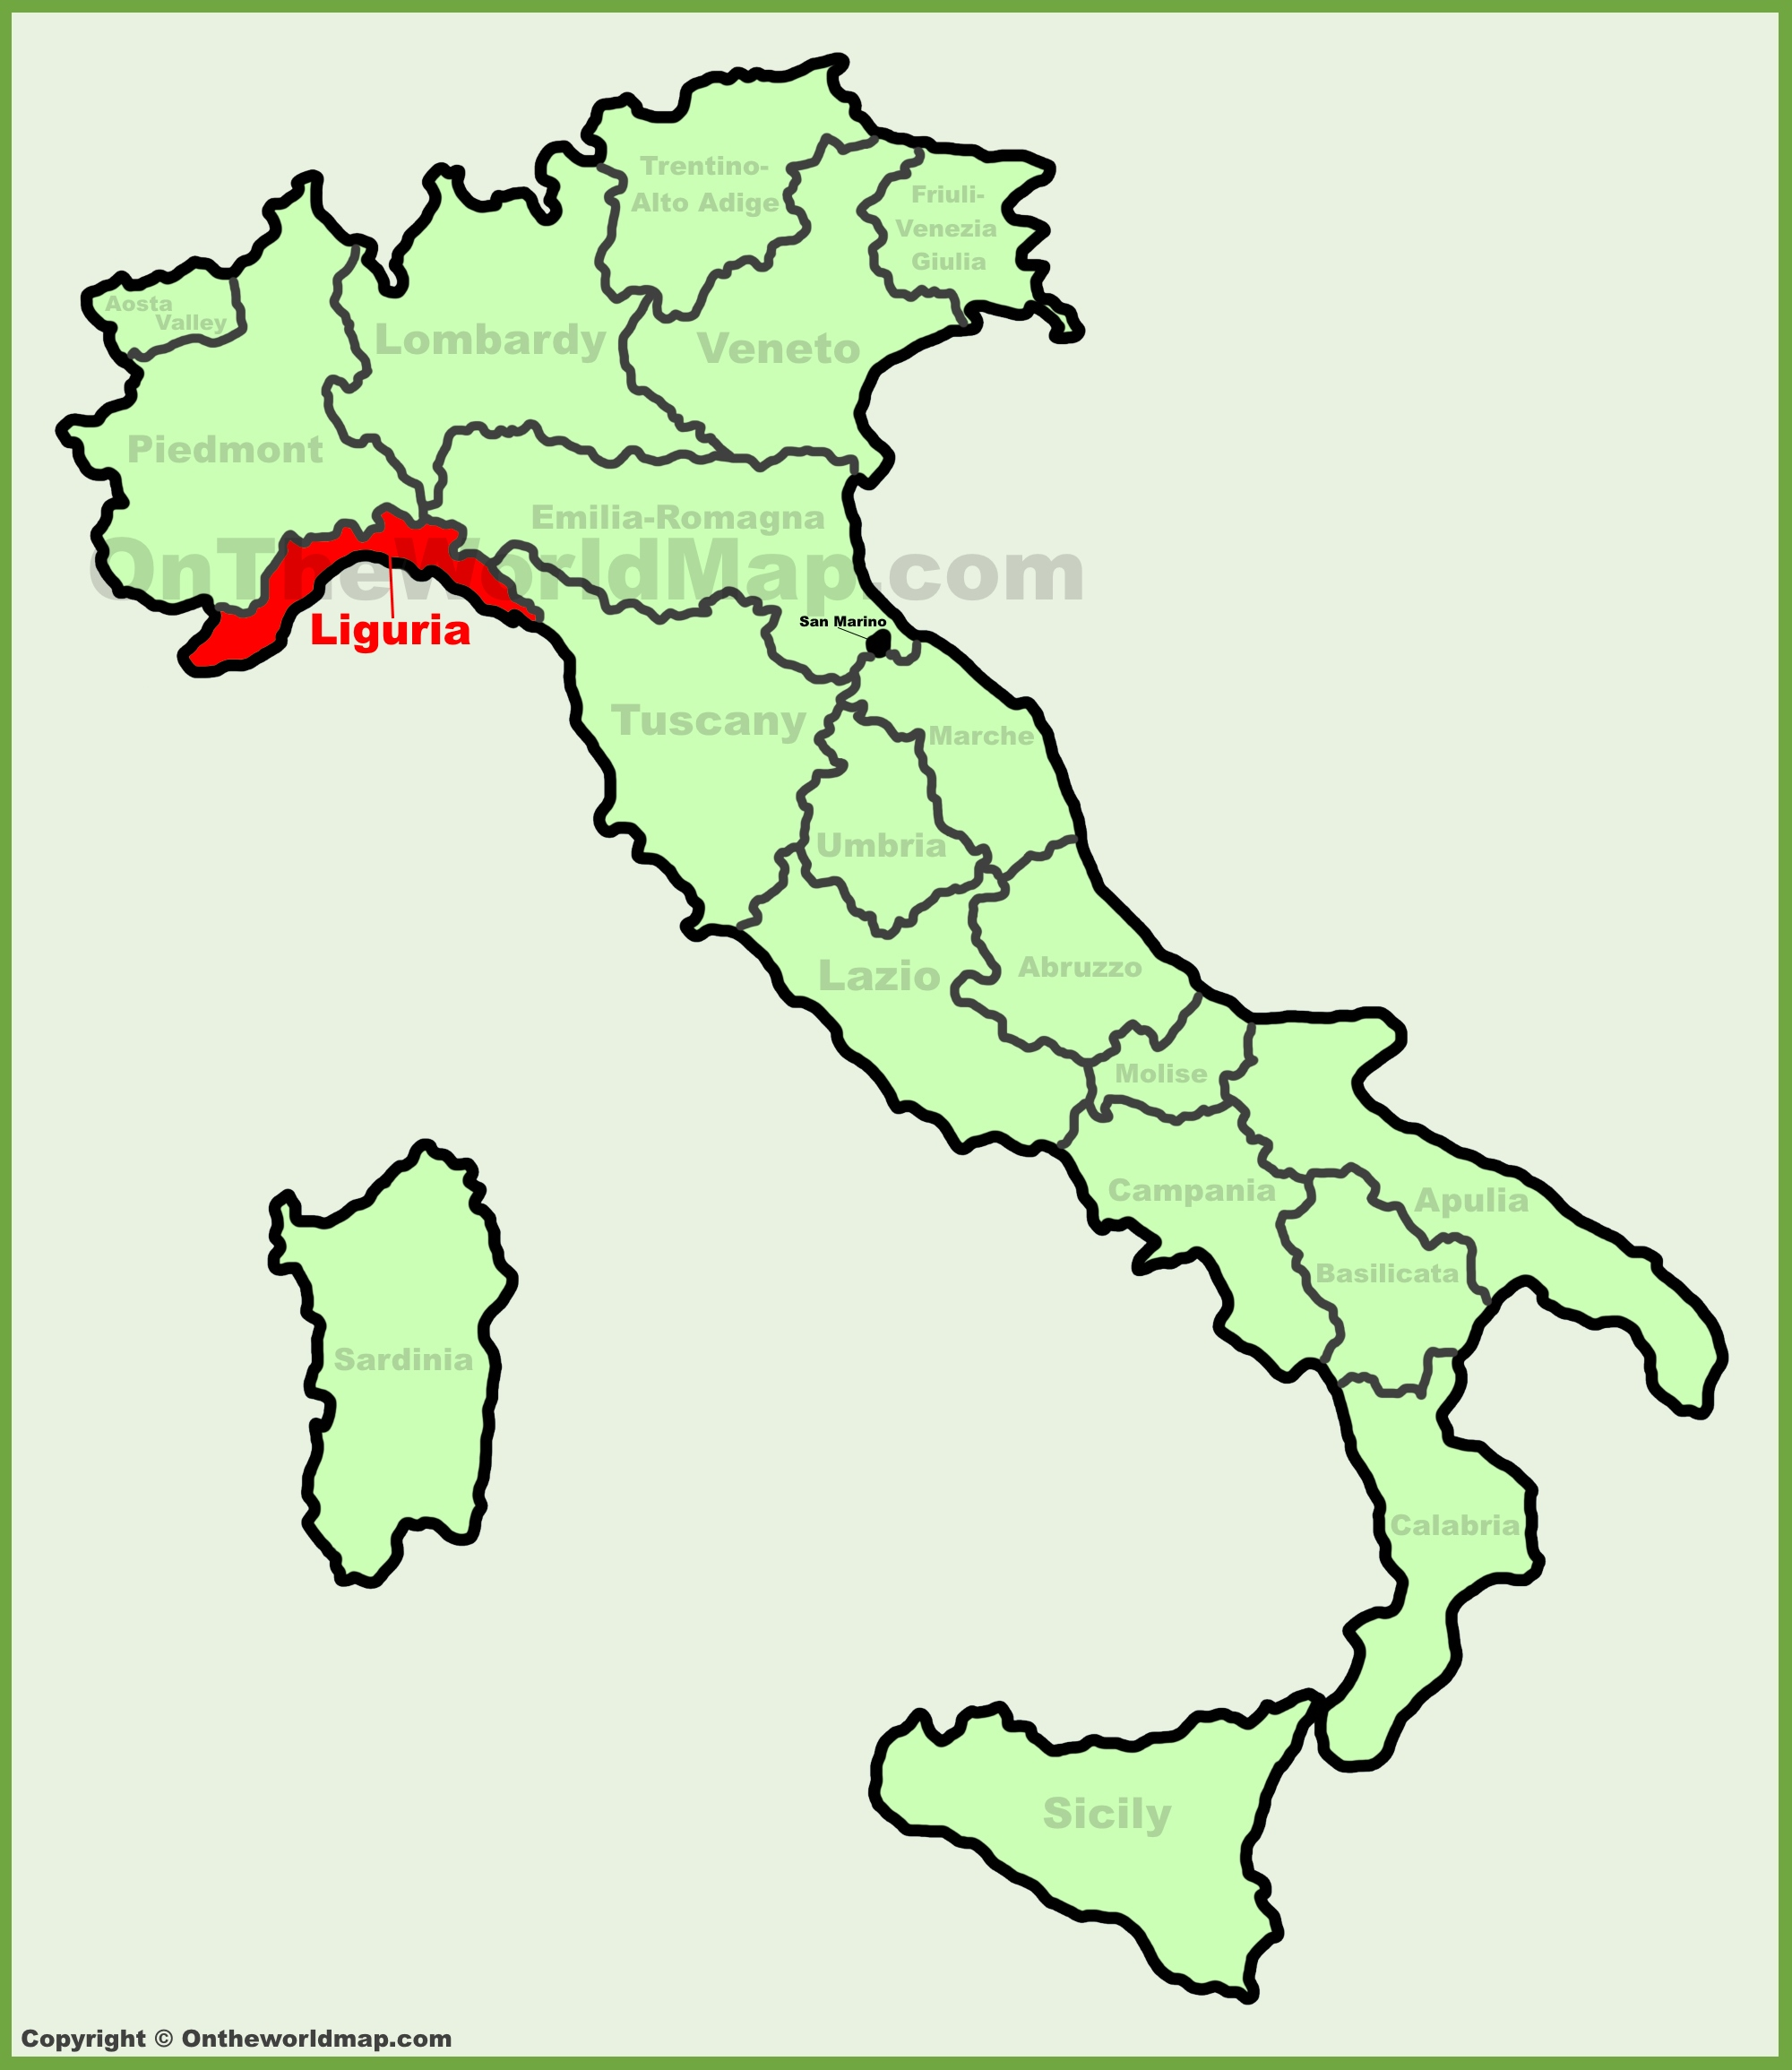 Liguria location on the Italy map